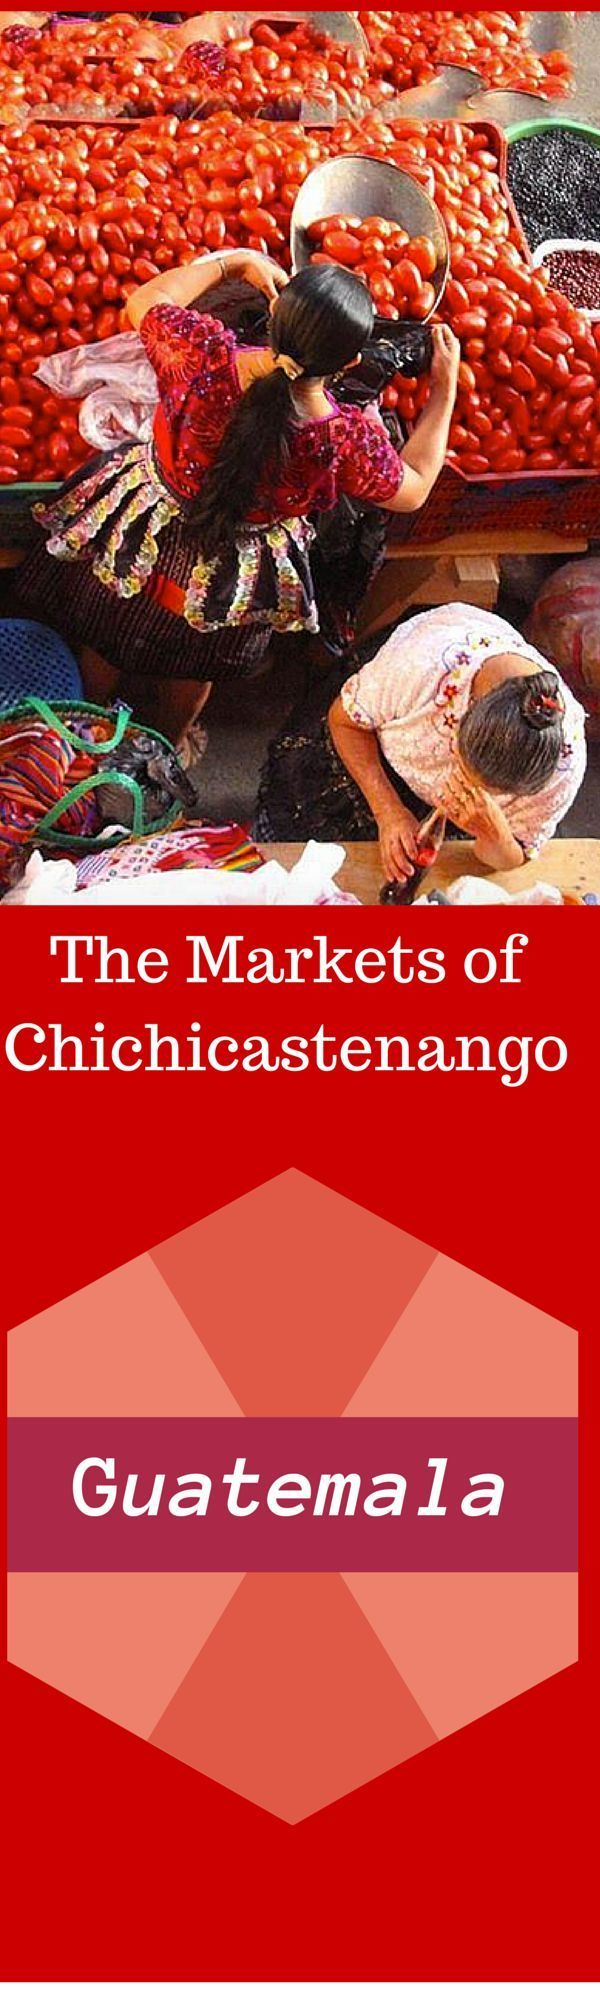 Things to do in Guatemala -  Chichicastenango is an indigenous village lying on the crest of the northern volcanoes in Guatemala. It is at an altitude of almost 2000 meters (6500 feet). It is especially busy during market days which are held every Thursday and Sunday. The market days are a hustle and bustle atmosphere unlike anything I have ever experienced in all of my travels. http://PointsandTravel.com